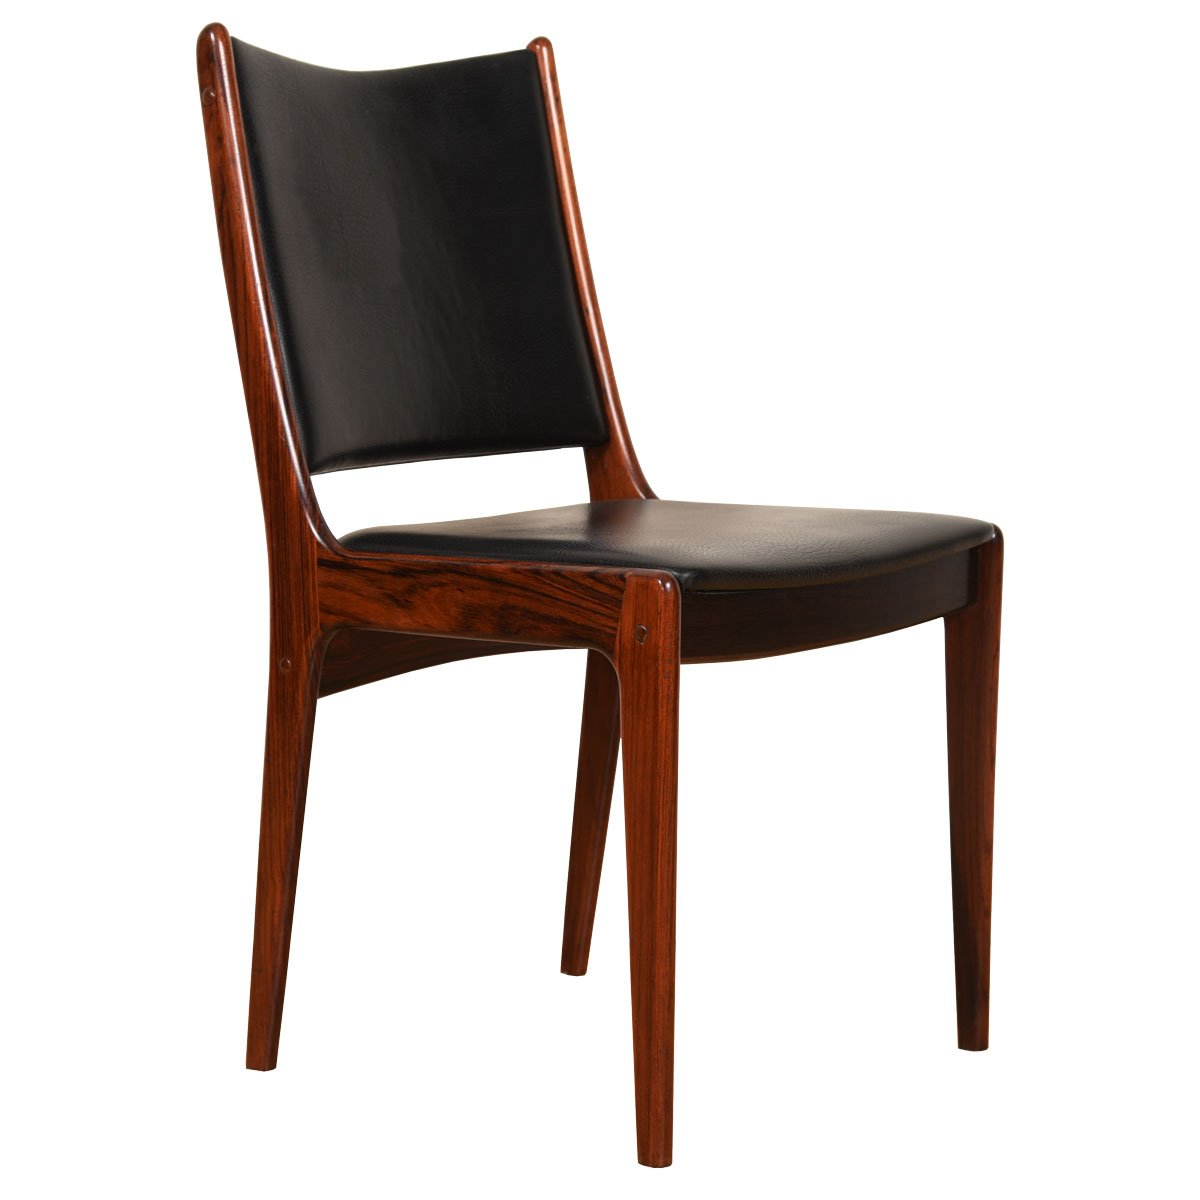 Set of 6 Danish Modern Rosewood Dining Chairs